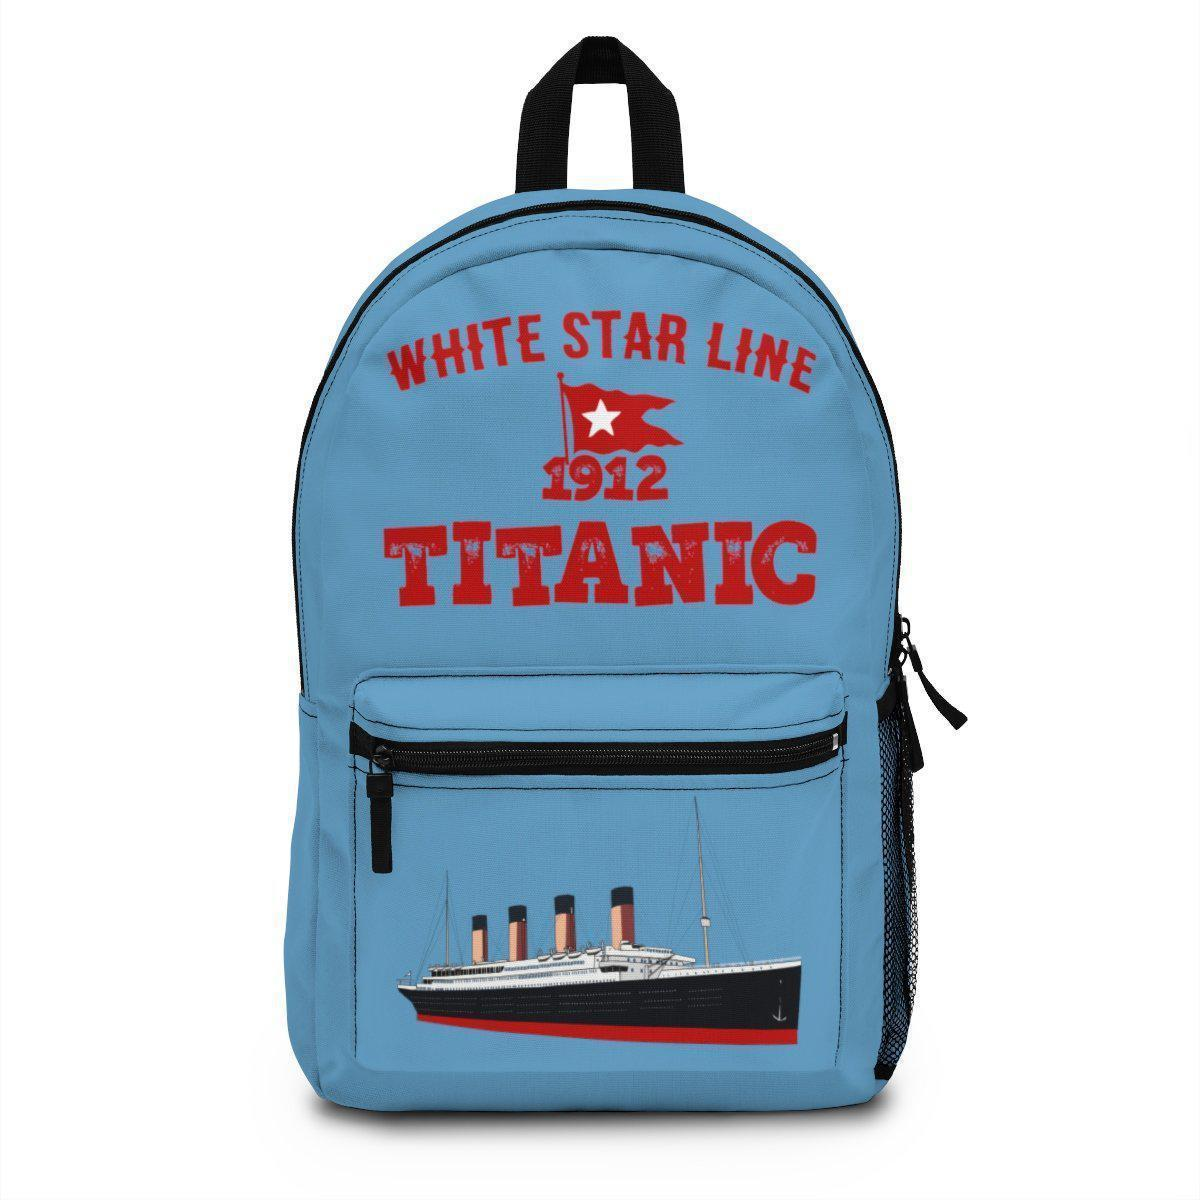 Vintage wanderlust backpack, Titanic backpack for pupil, first day of school bag-School backpack-Printify-titanic-school-tote-bag-backpack-duffel-drawstring-white-star-line-Titanic shop